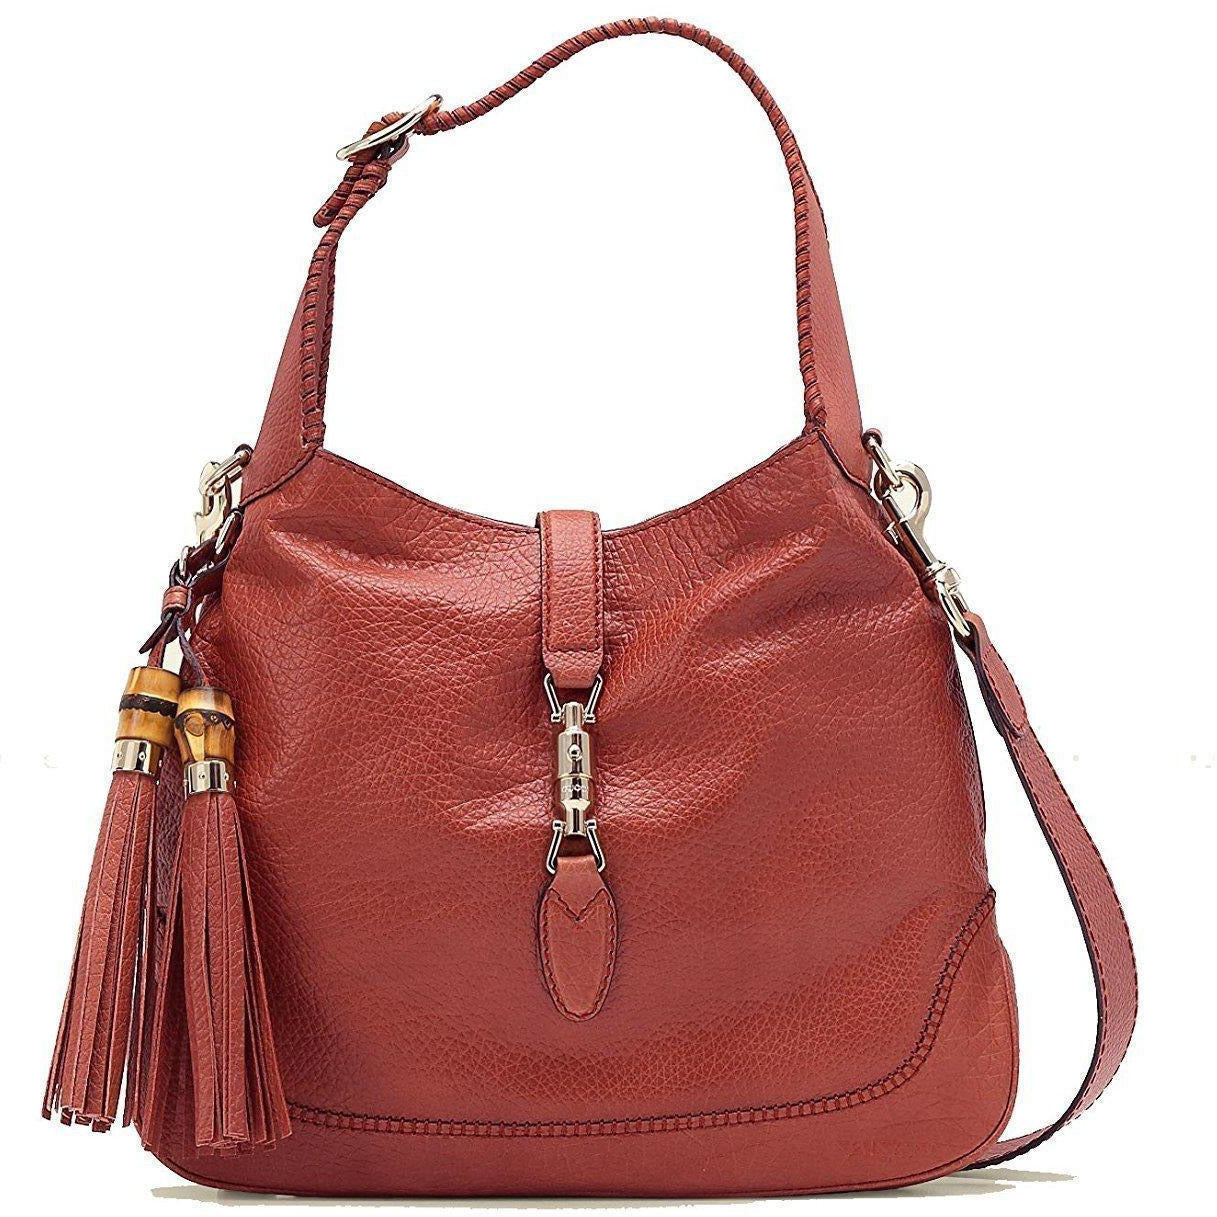 Gucci Women's Coral Red Jackie Leather Hobo Handbag Bamboo Tassel 246907 Handbags Gucci